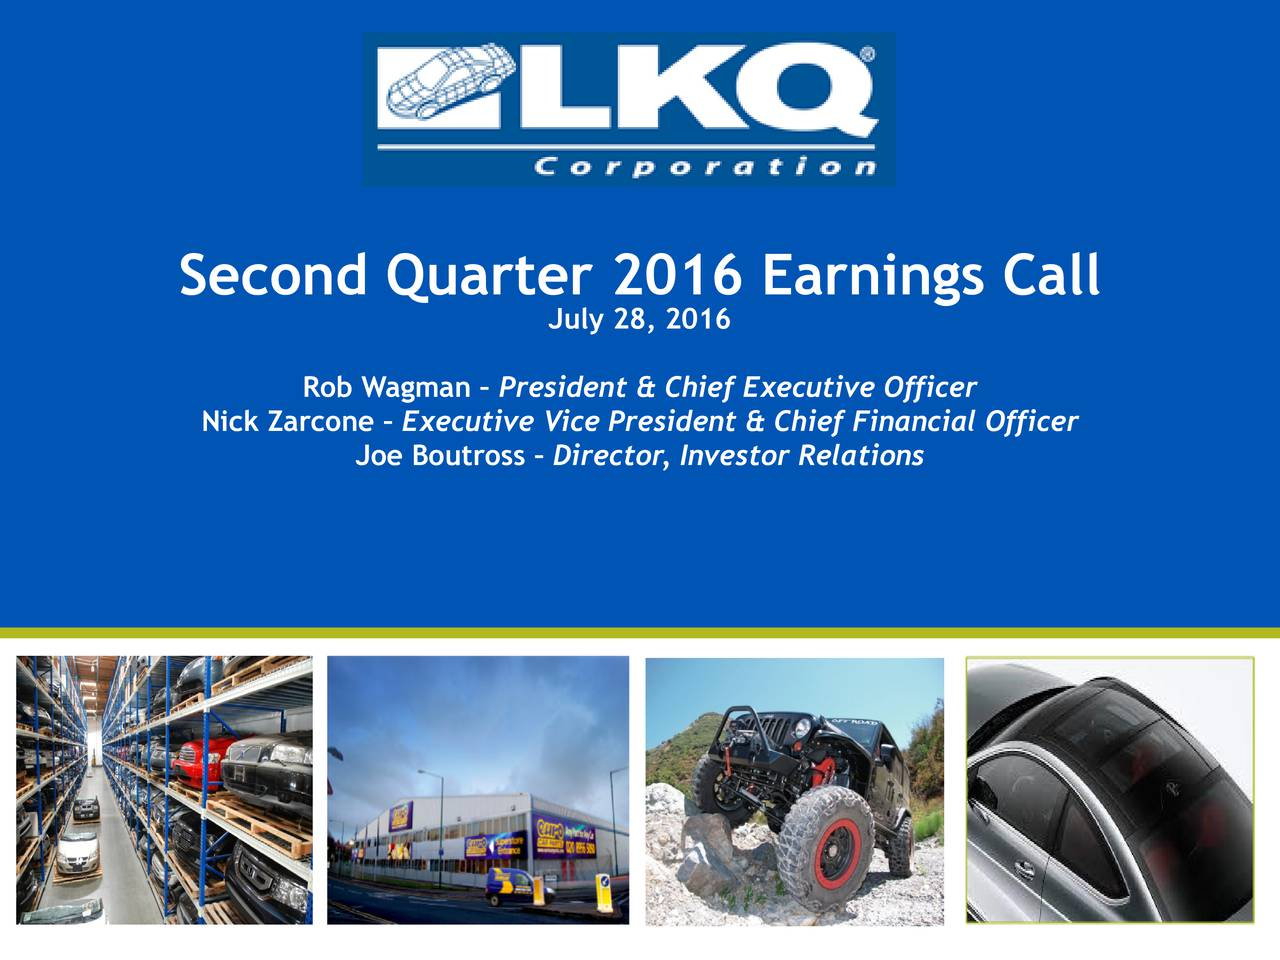 0 | 85 | 180 LKQ Green 176 | 186 | 31 Second Quarter 2016 Earnings Call July28, 2016 LKQ Silver 132 | 137 | 140 Rob Wagman  President & Chief Executive Officer Keystone Gold Nick Zarcone  Executive Vice President & Chief Financial Officer 255 | 188 | 31 Joe Boutross  Director, Investor Relations KeyKool Secondary Blue 137 | 173 | 219 KeyKool Tertiary Blue 216 | 232 | 241 PicKYourPart Oraange 211 | 77 | 30 HDTruck Red 210 | 35 | 42 LKQ Gray 62 | 70 | 70